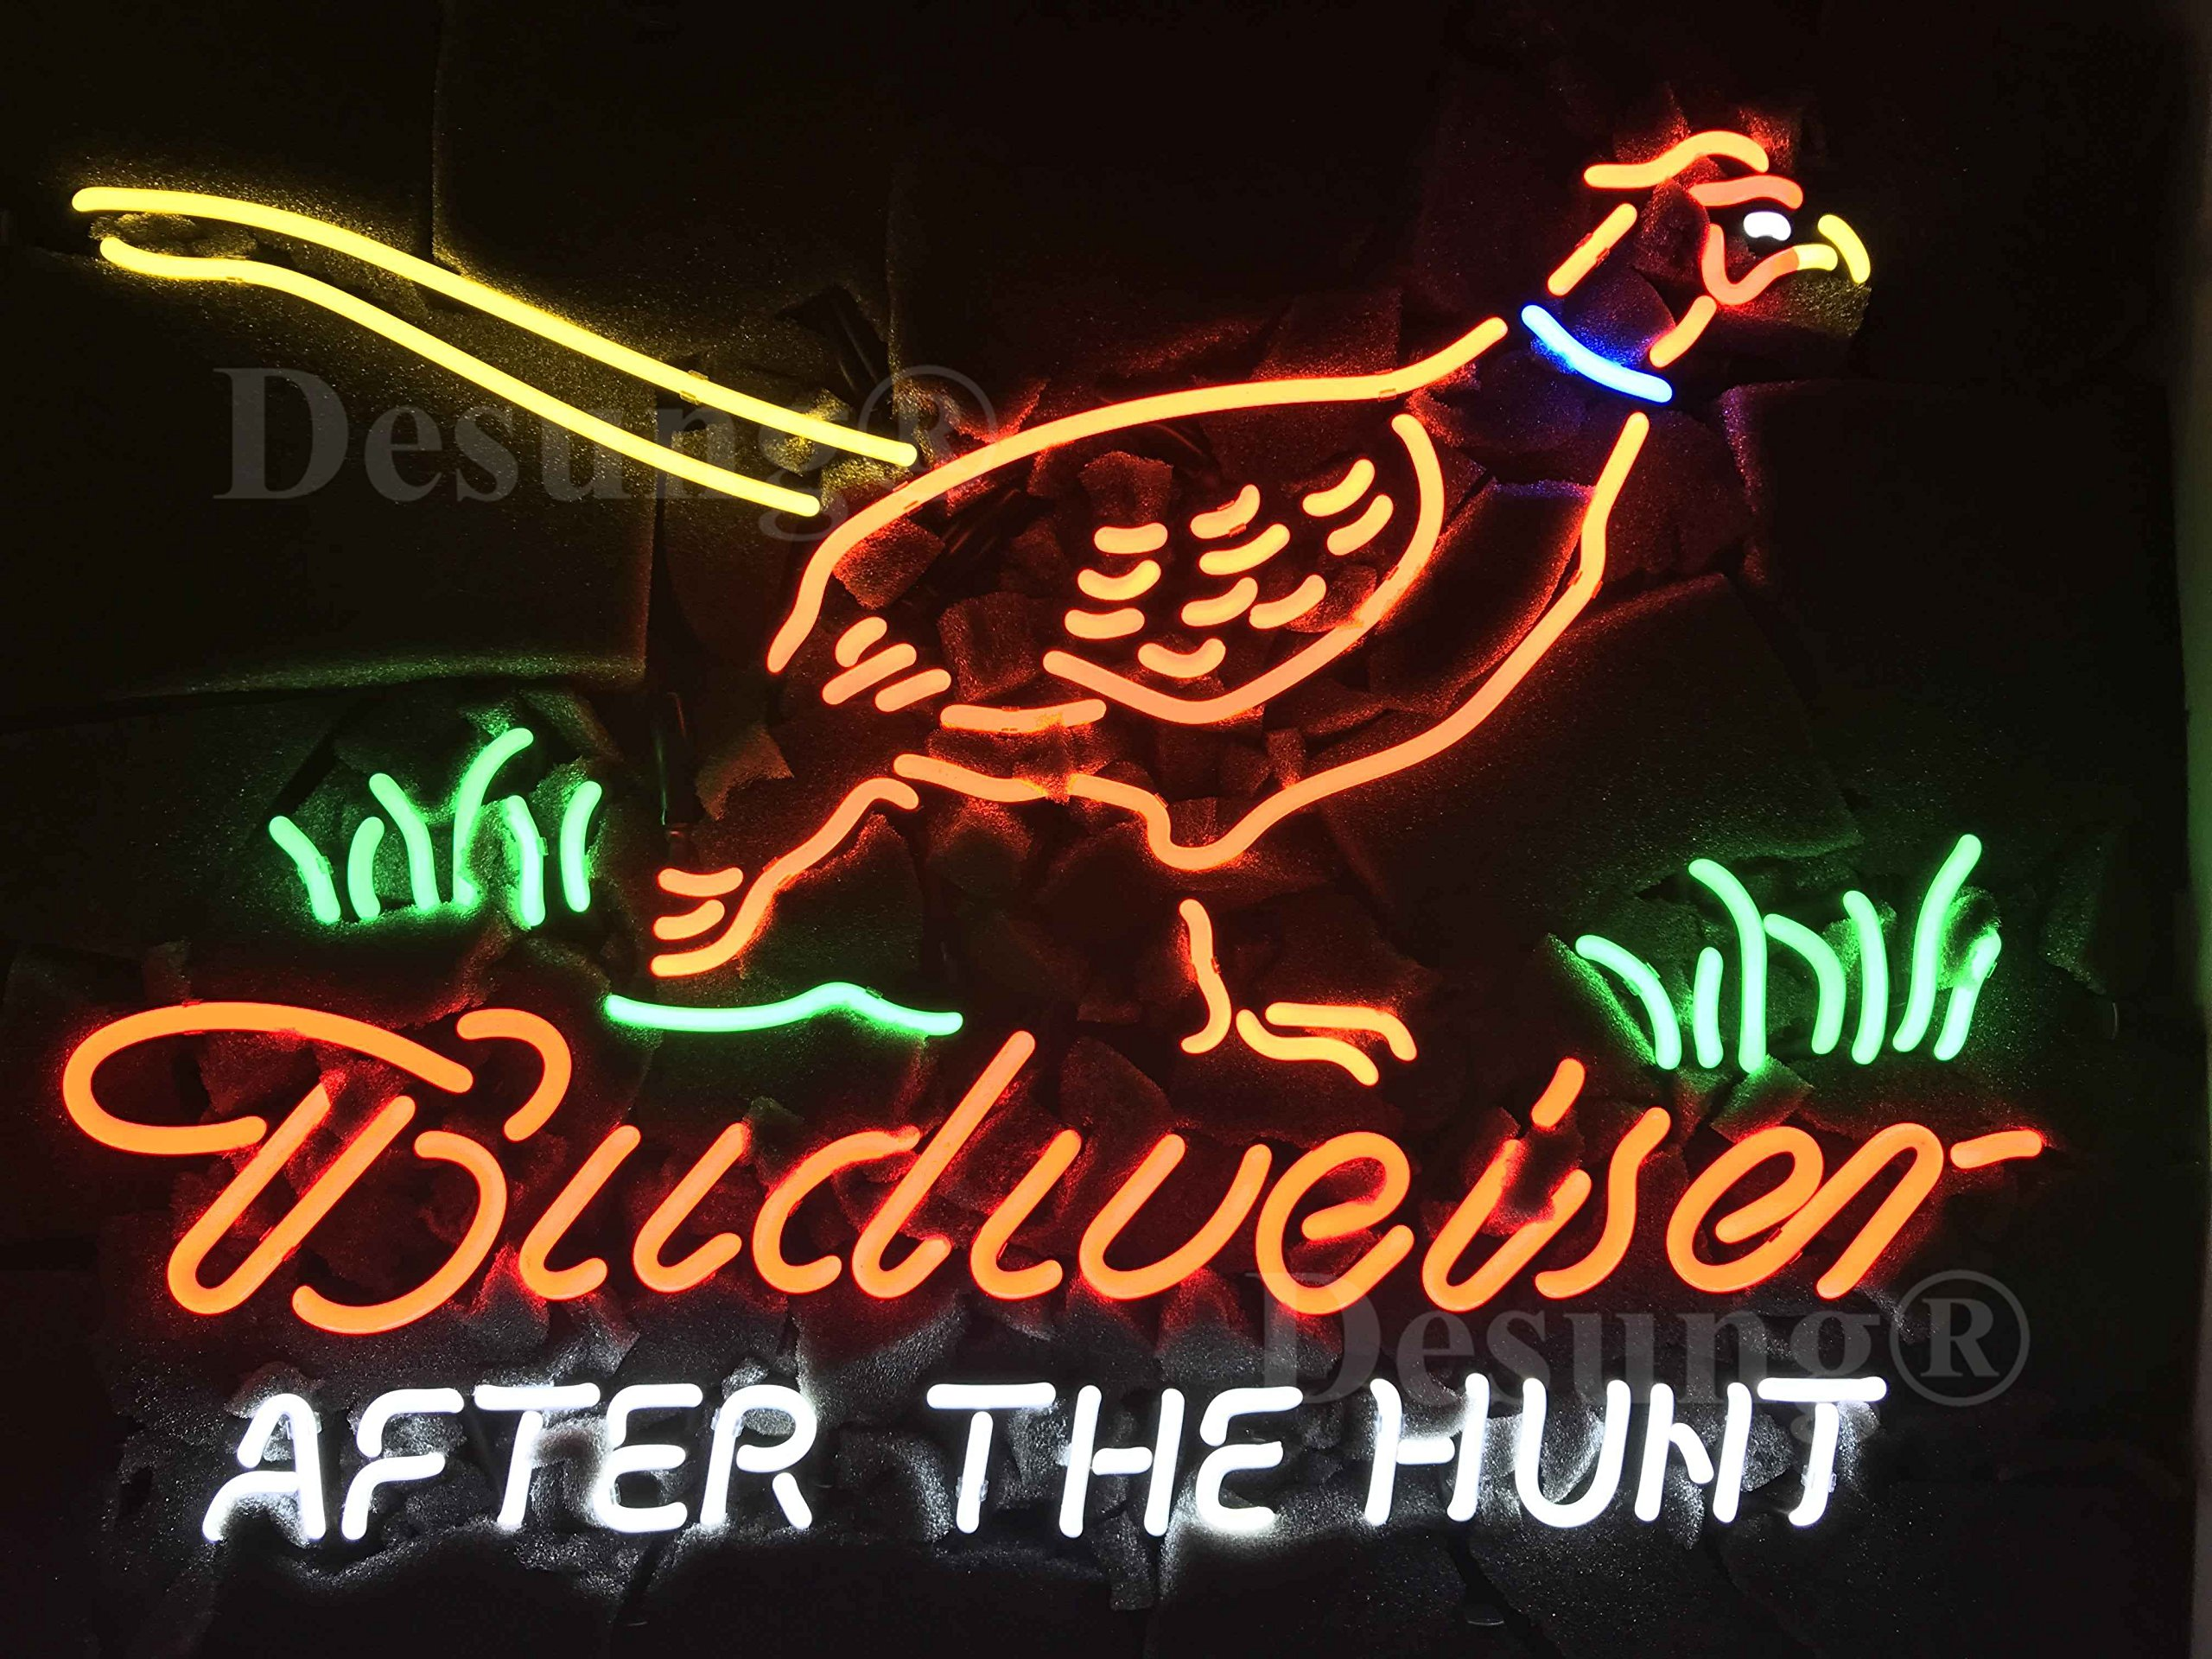 Desung New 24''x20'' Pheasant After The Hunt Hunter Budweisers Neon Sign Man Cave Bar Pub Beer Neon Lamp Real Glass Neon Light DX115